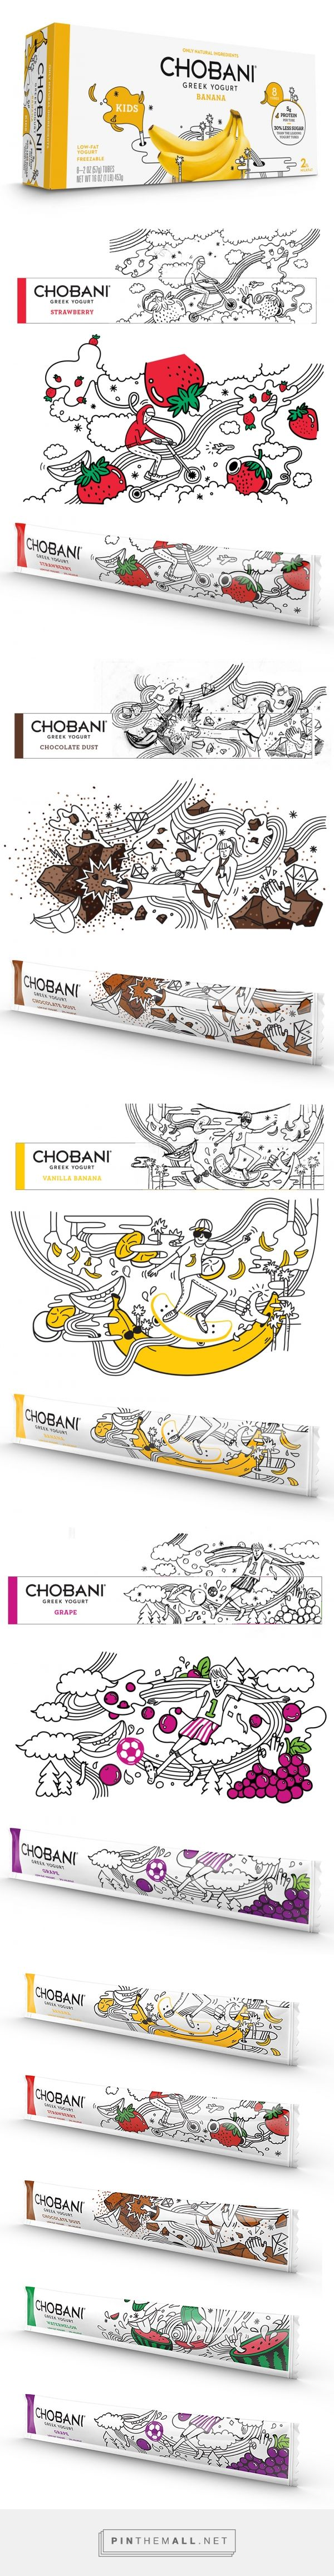 Chobani Yogurt Kids — The Dieline - Branding & Packaging